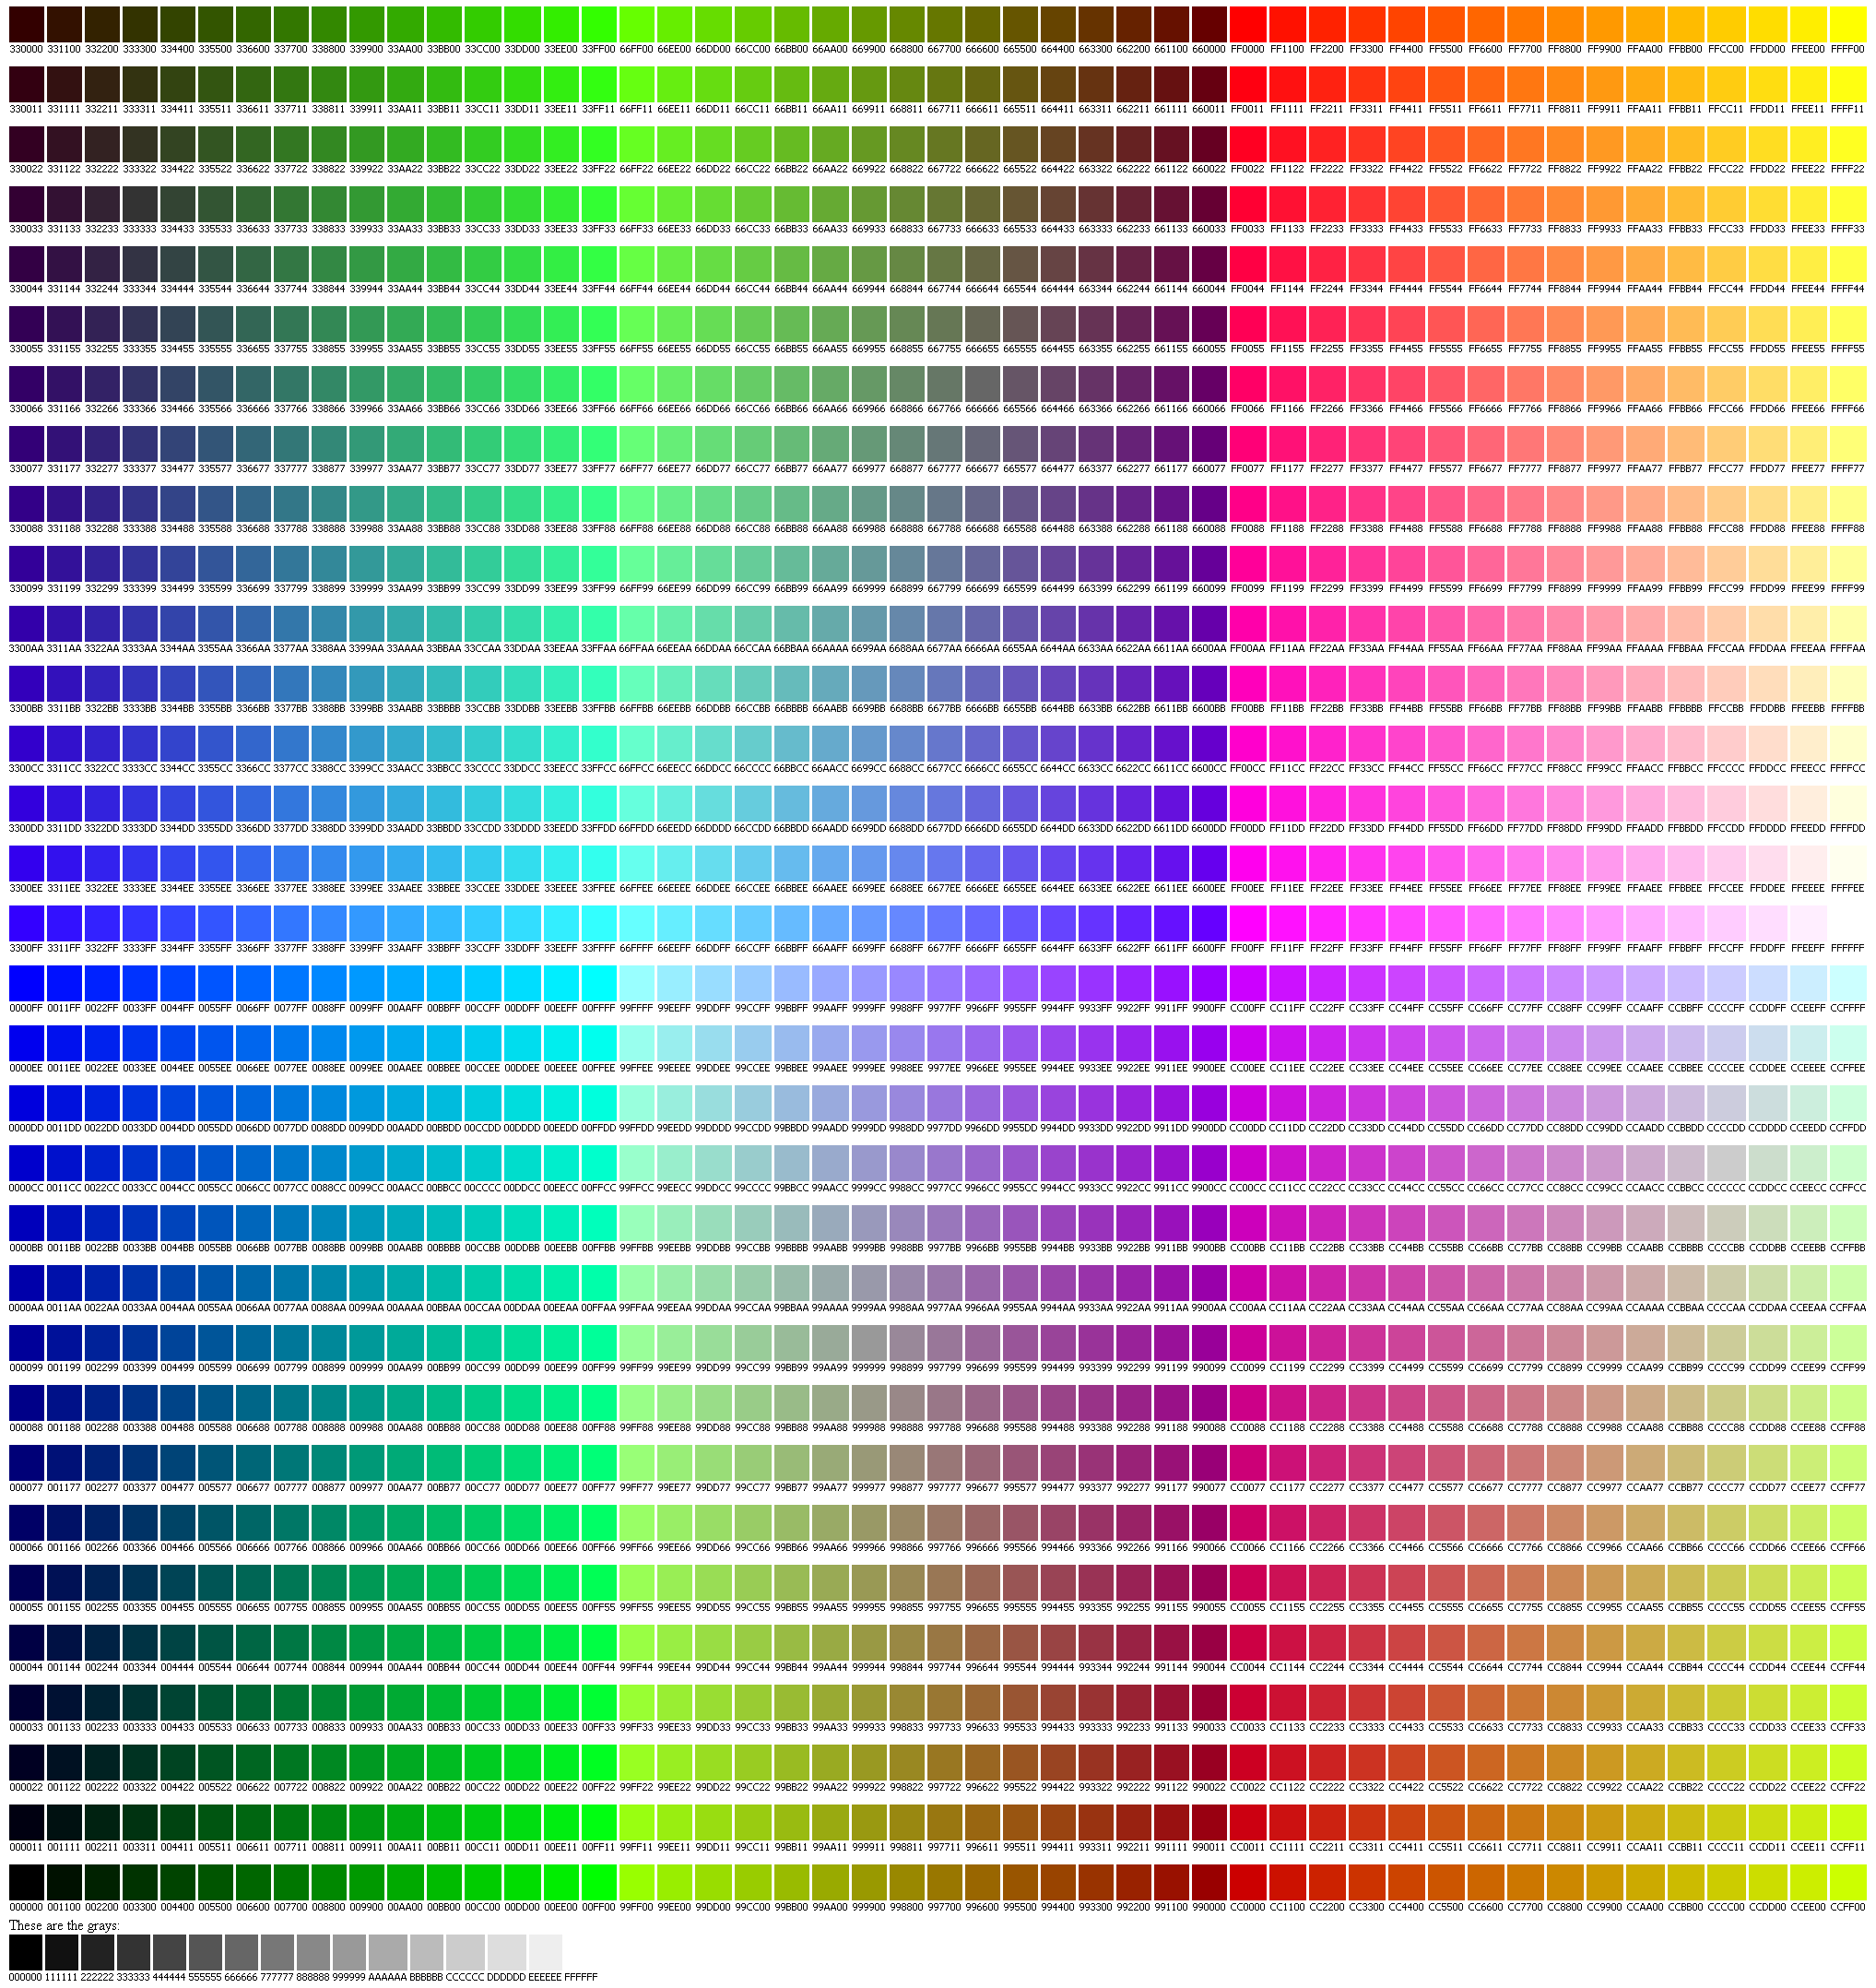 how to change pixel colors of a png in java